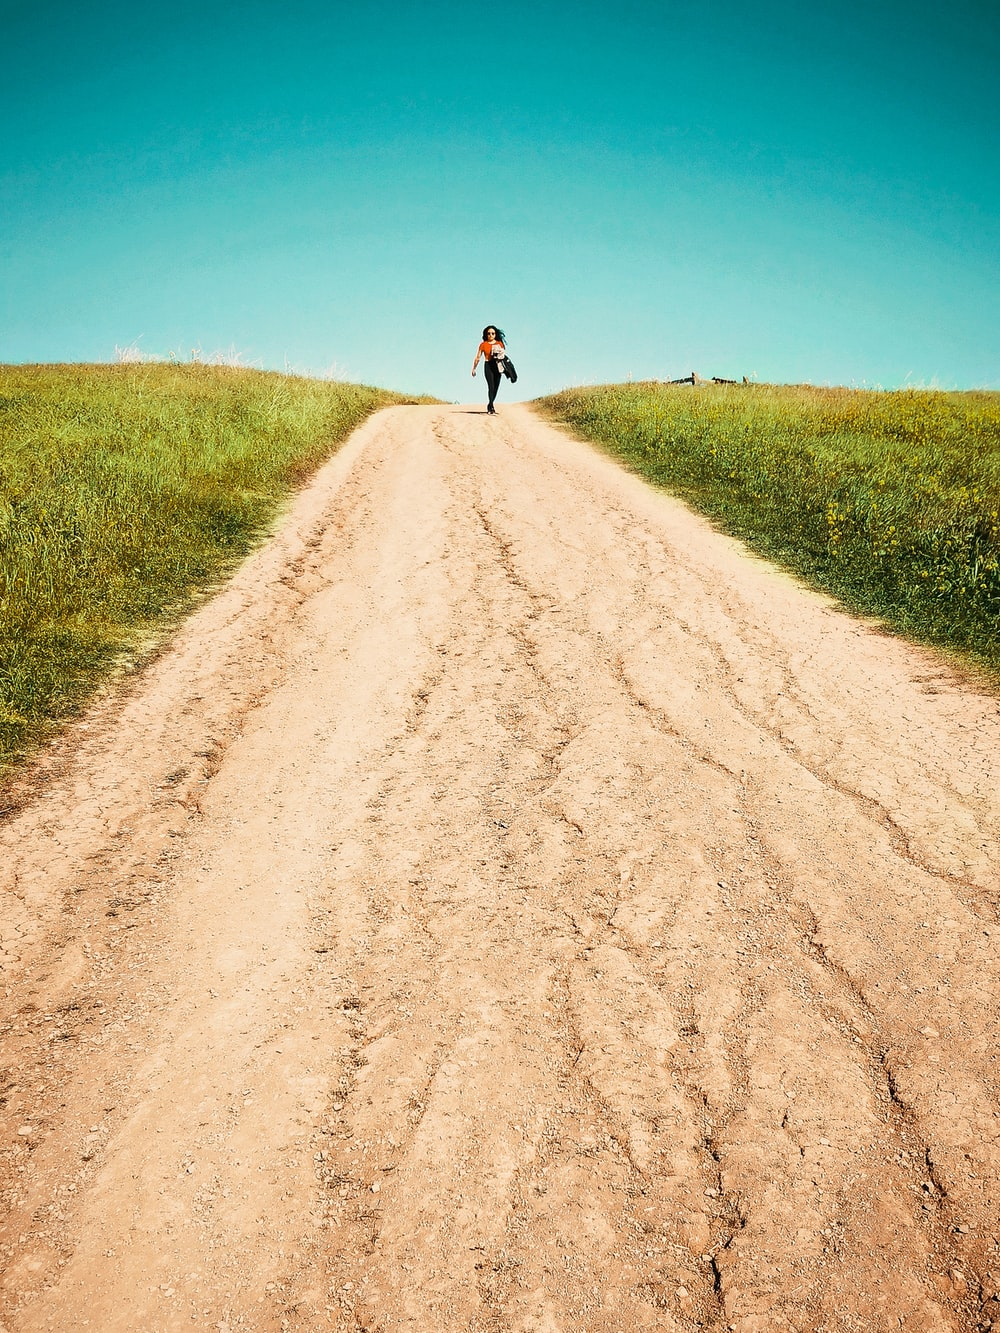 person in black shirt and black pants walking on brown dirt road between green grass field